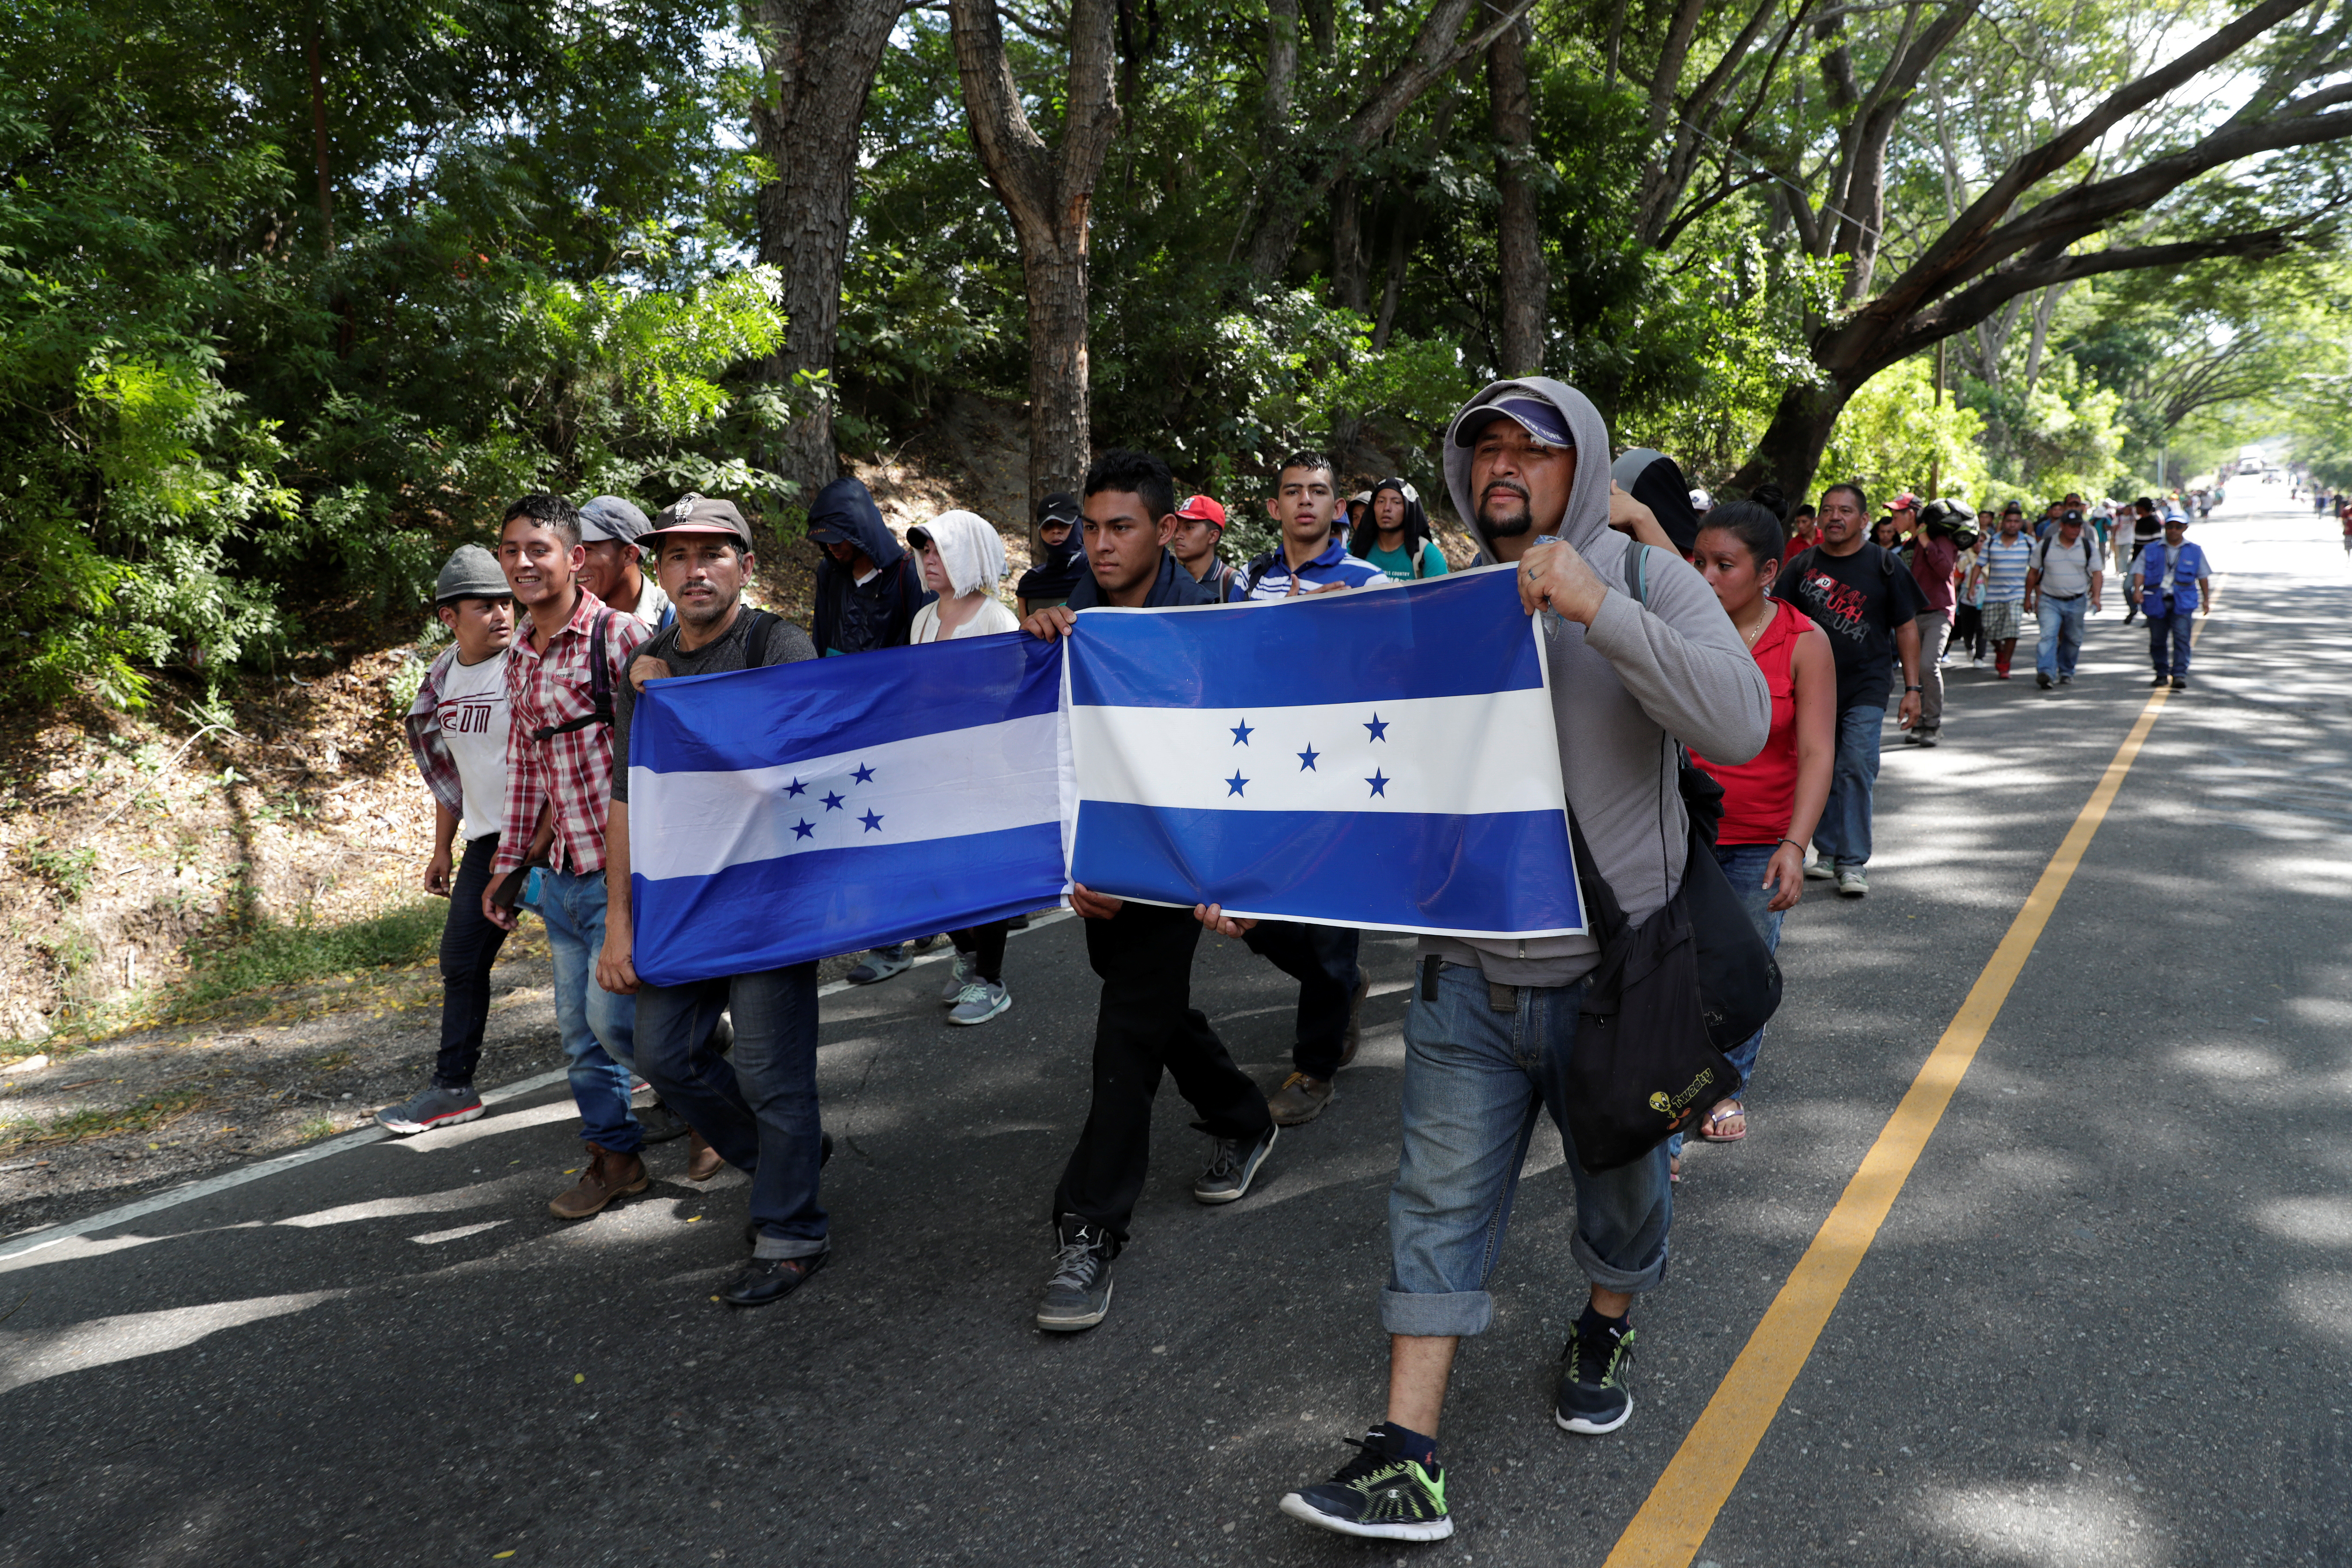 Honduran migrants, part of a second wave of migrants heading to the U.S., hold Honduran flags as they continue their journey to the Mexican border with other Central American migrants, in Chiquimula, Guatemala October 23, 2018. REUTERS/Luis Echeverria